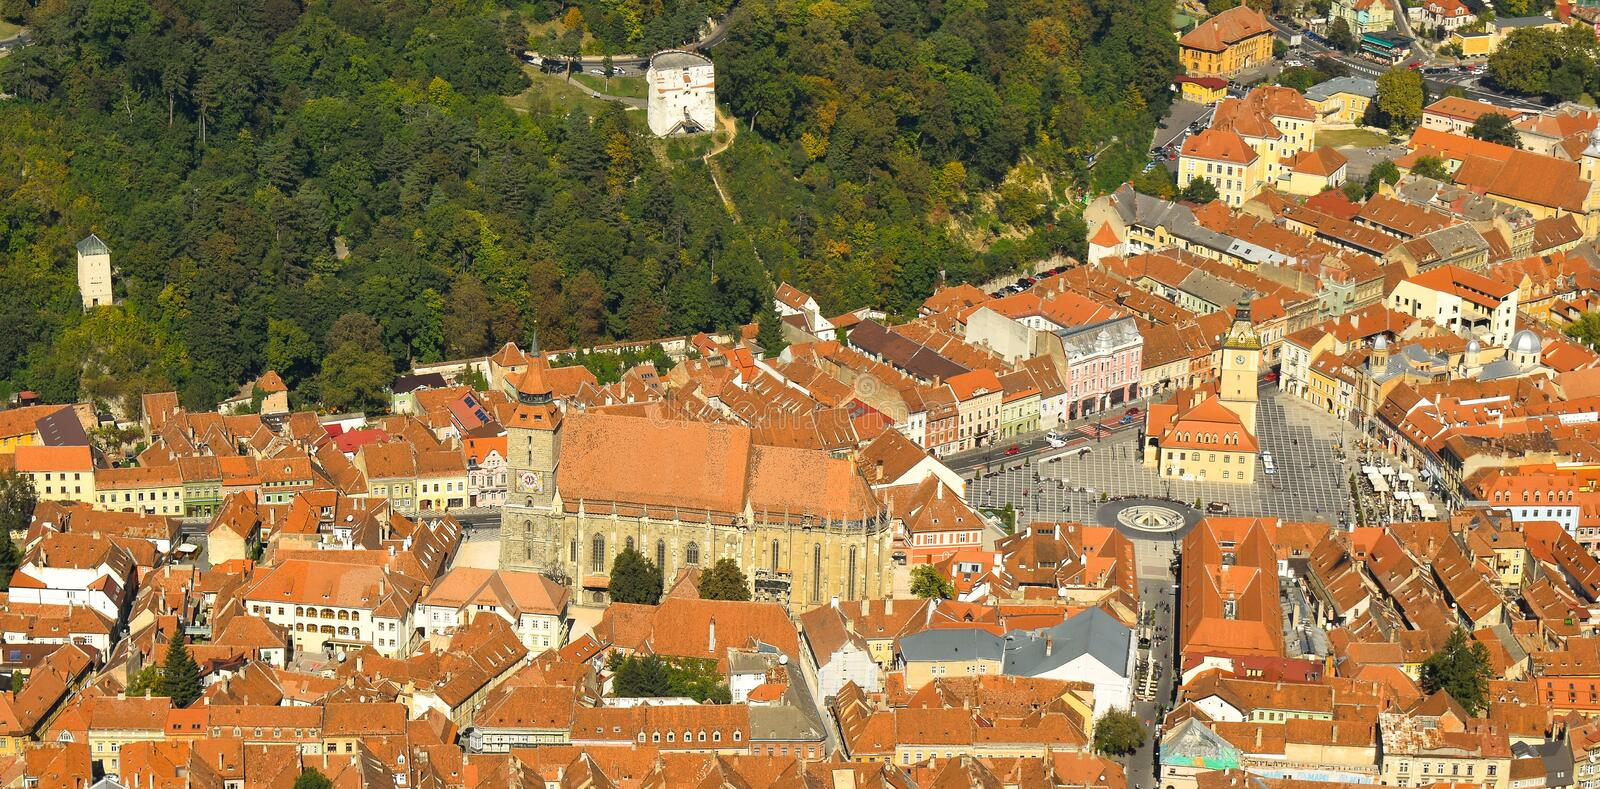 Brasov Old City Hall. Council Square. Autumn view from above Tampa Mountain. Brasov Old City. Autumn view from above Tampa Mountain. Black Church and The Council stock image